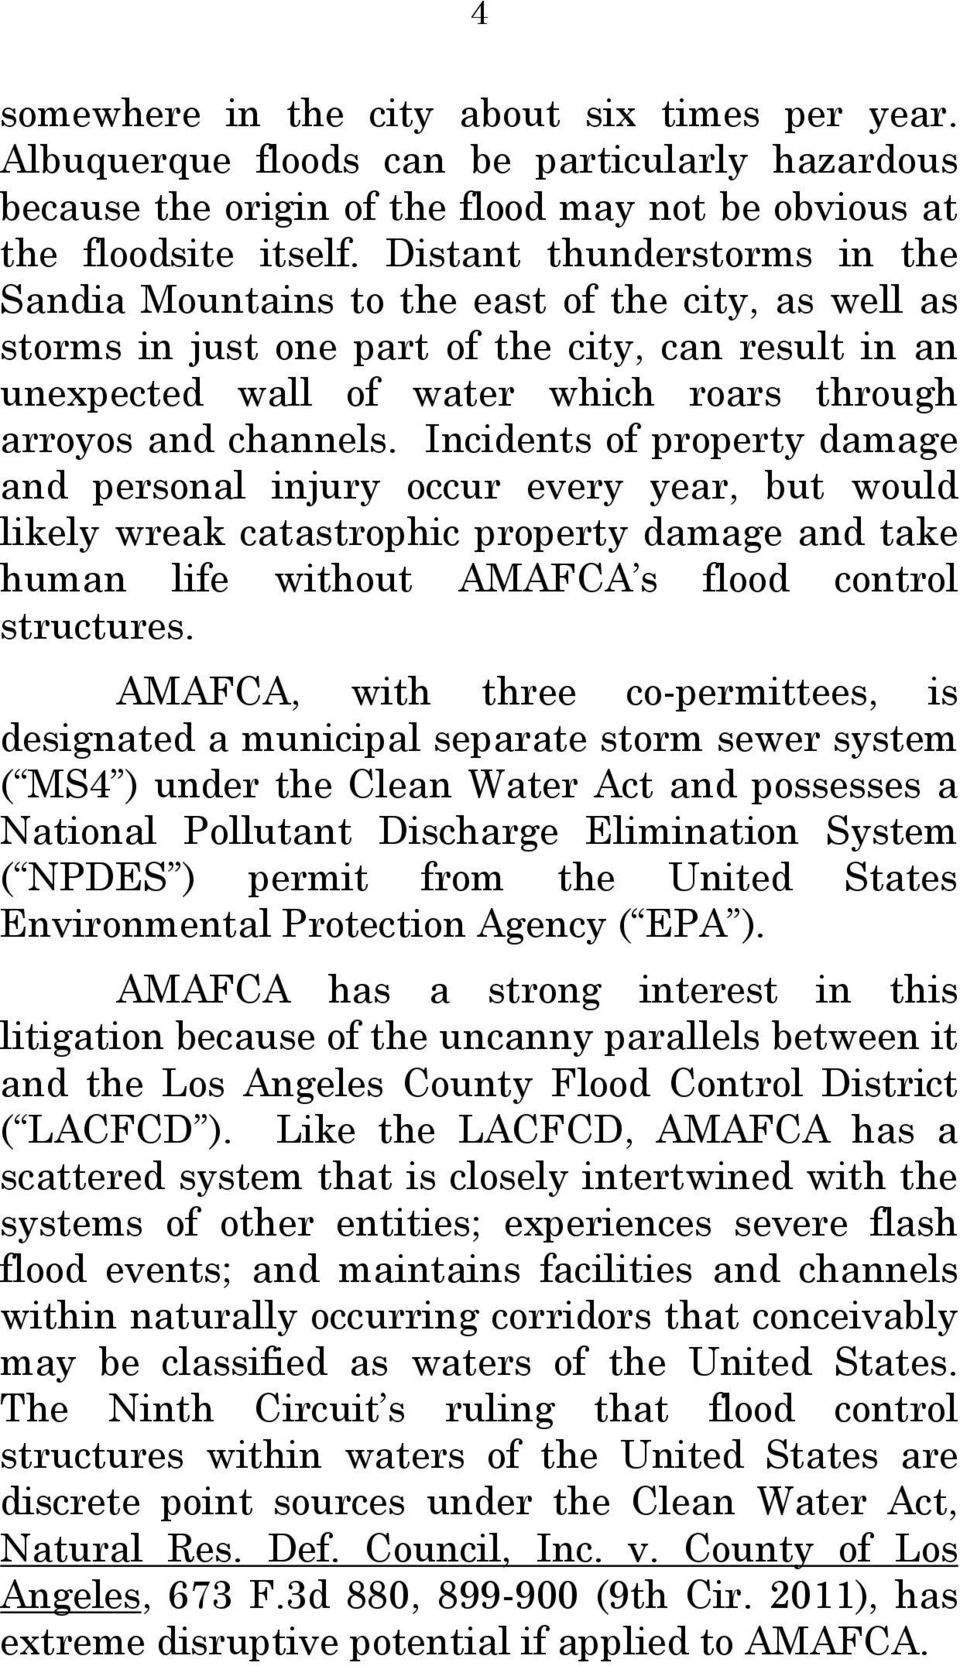 channels. Incidents of property damage and personal injury occur every year, but would likely wreak catastrophic property damage and take human life without AMAFCA s flood control structures.